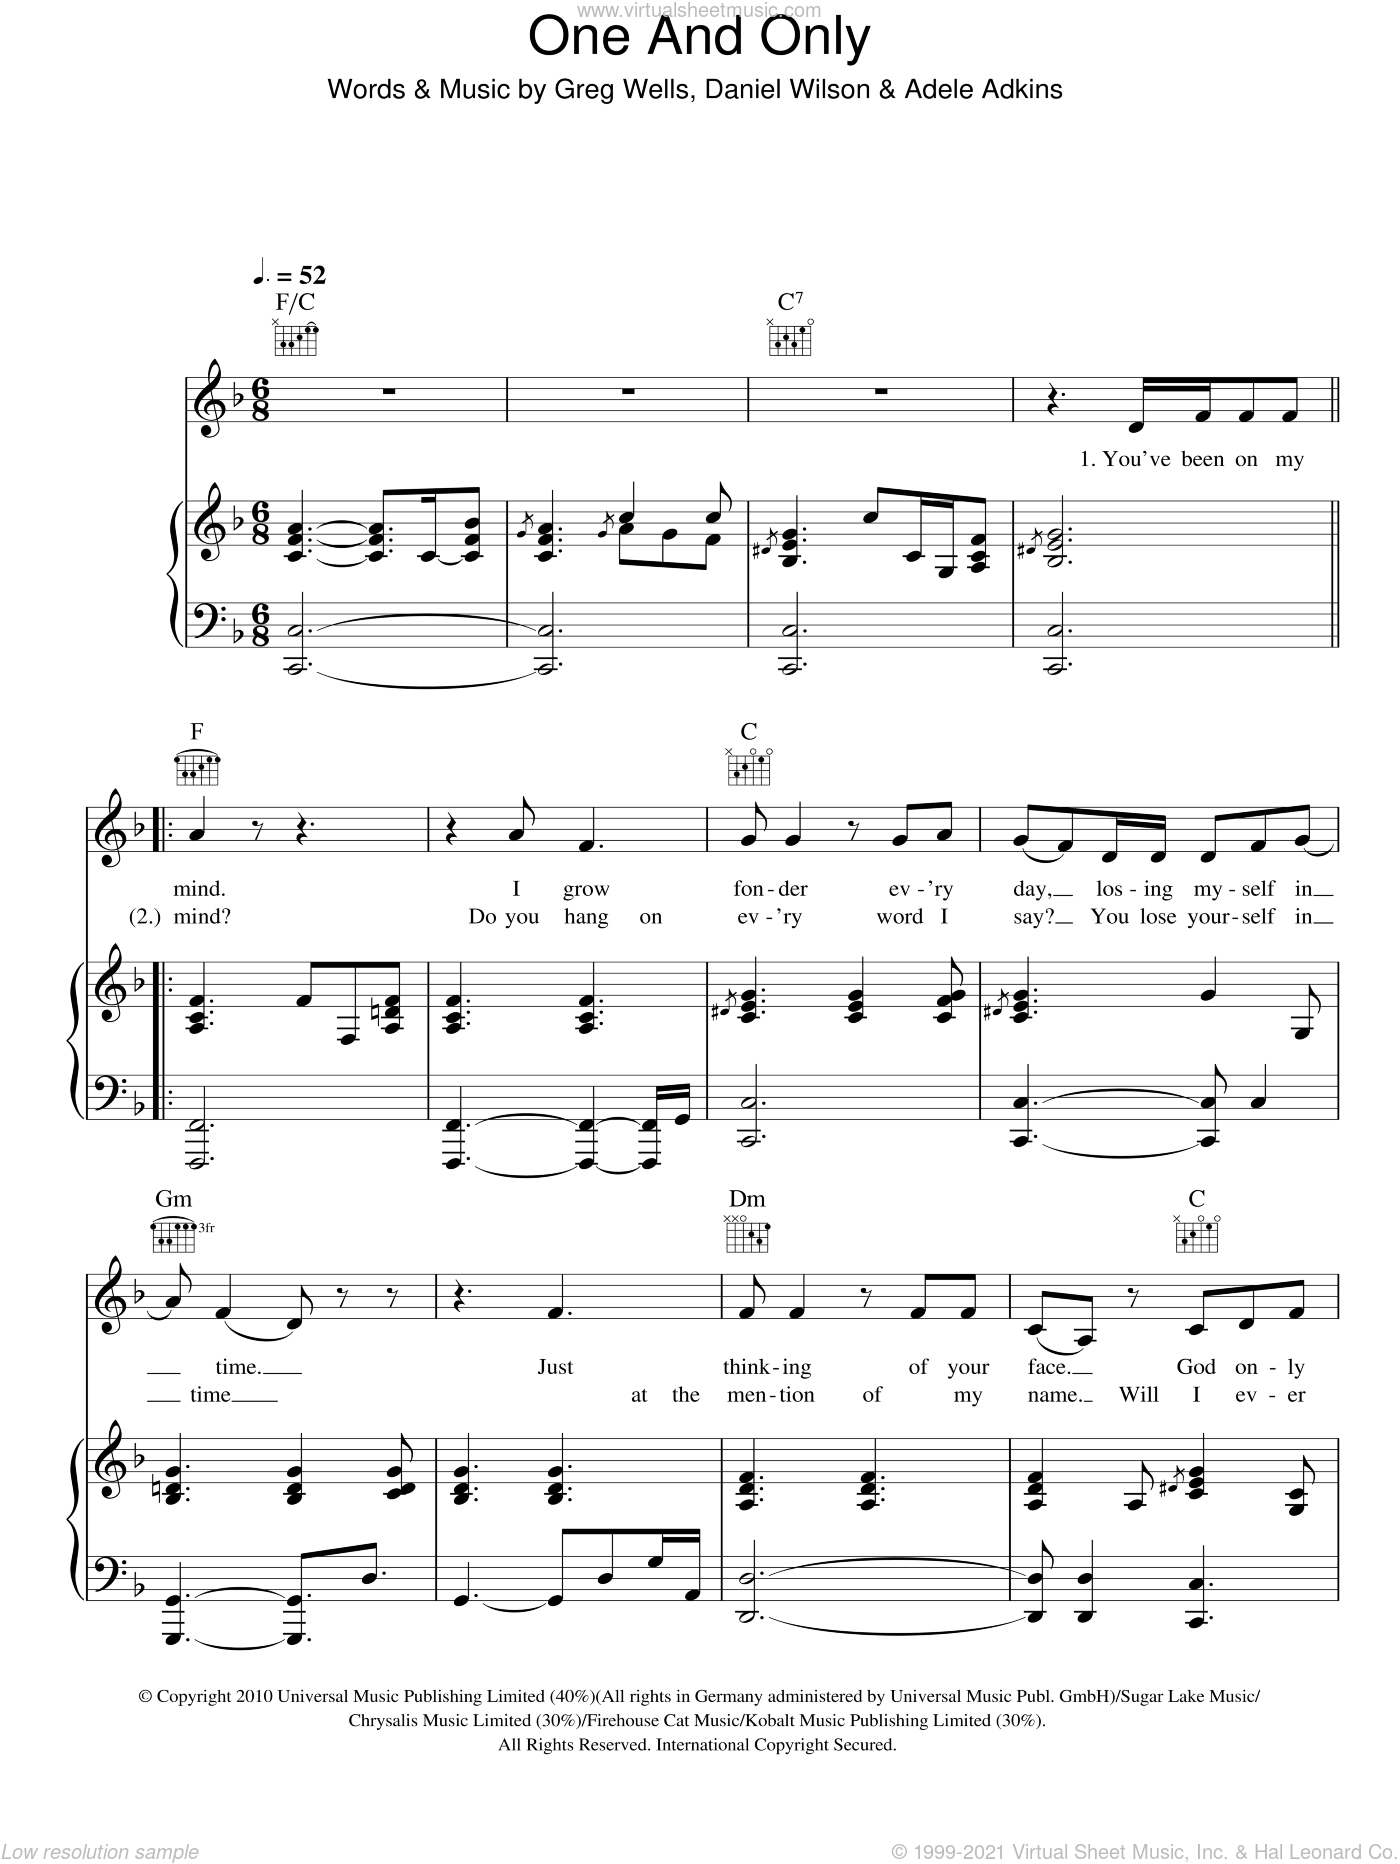 One And Only sheet music for voice, piano or guitar by Adele, Adele Adkins, Dan Wilson and Greg Wells, intermediate skill level